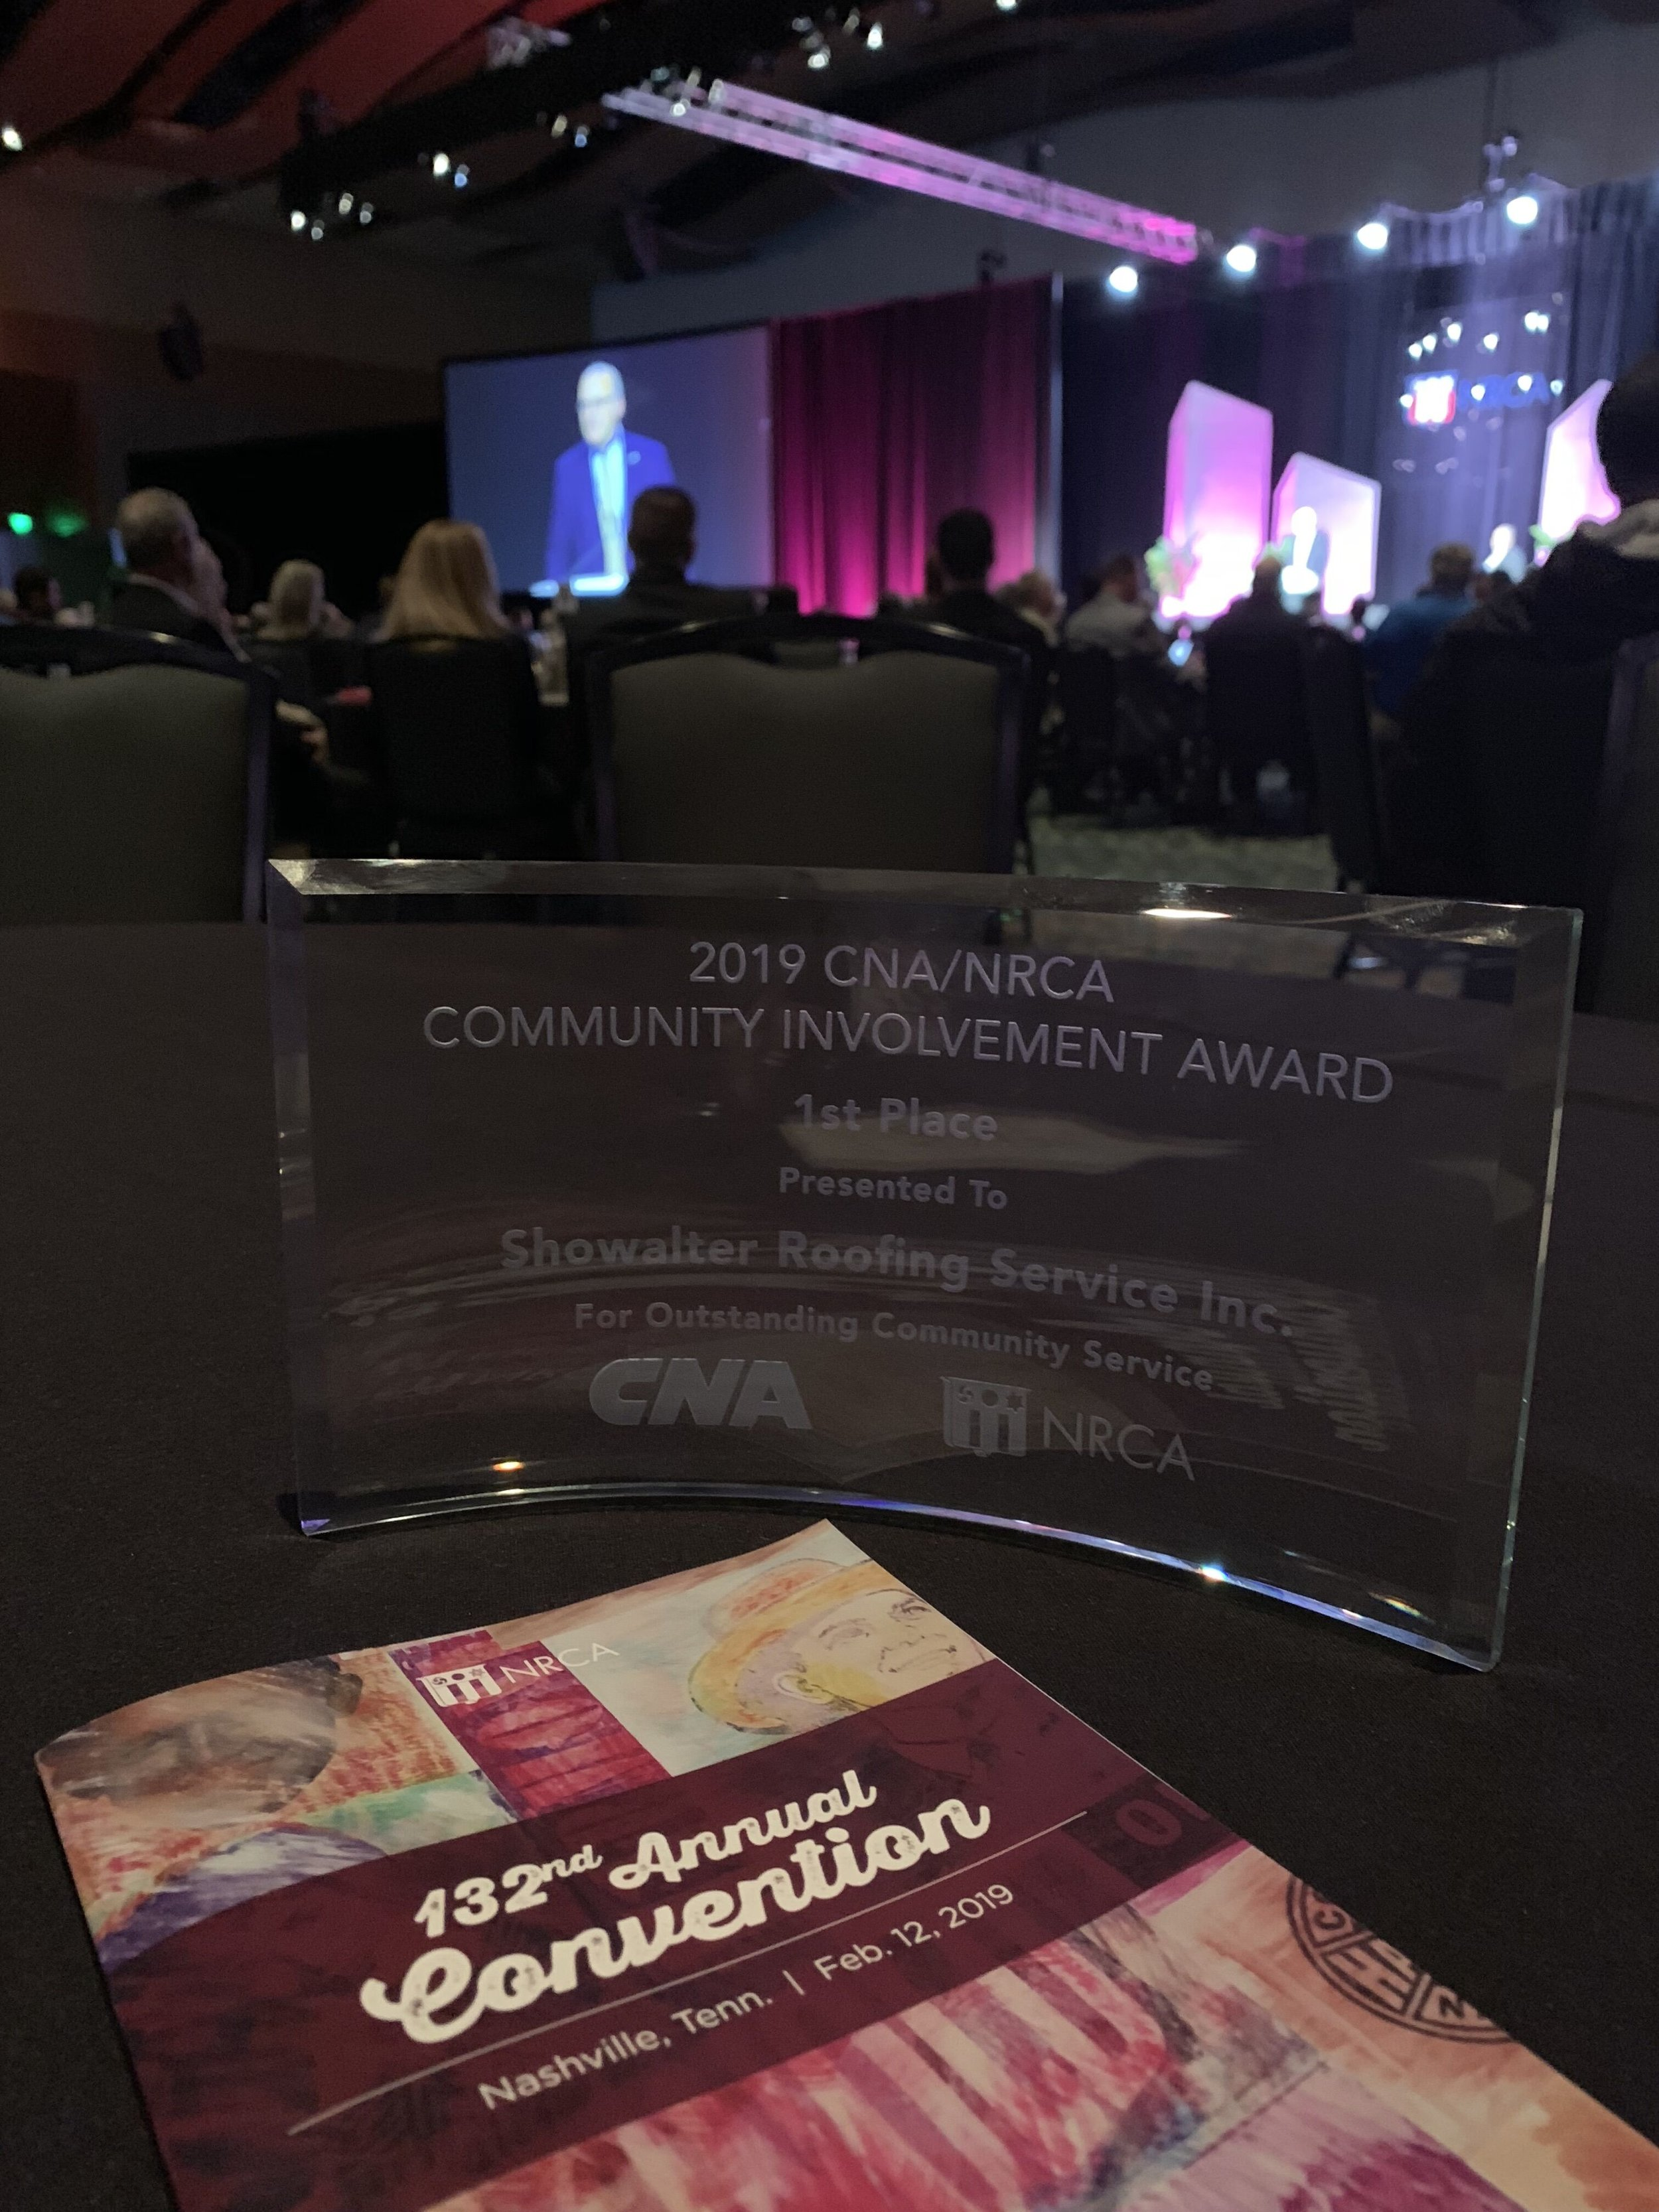 Showalter-Roofing-Service-Community-Service-Award-2019-First-Place-Winner-For-Community-Involvement-Illinois.jpeg